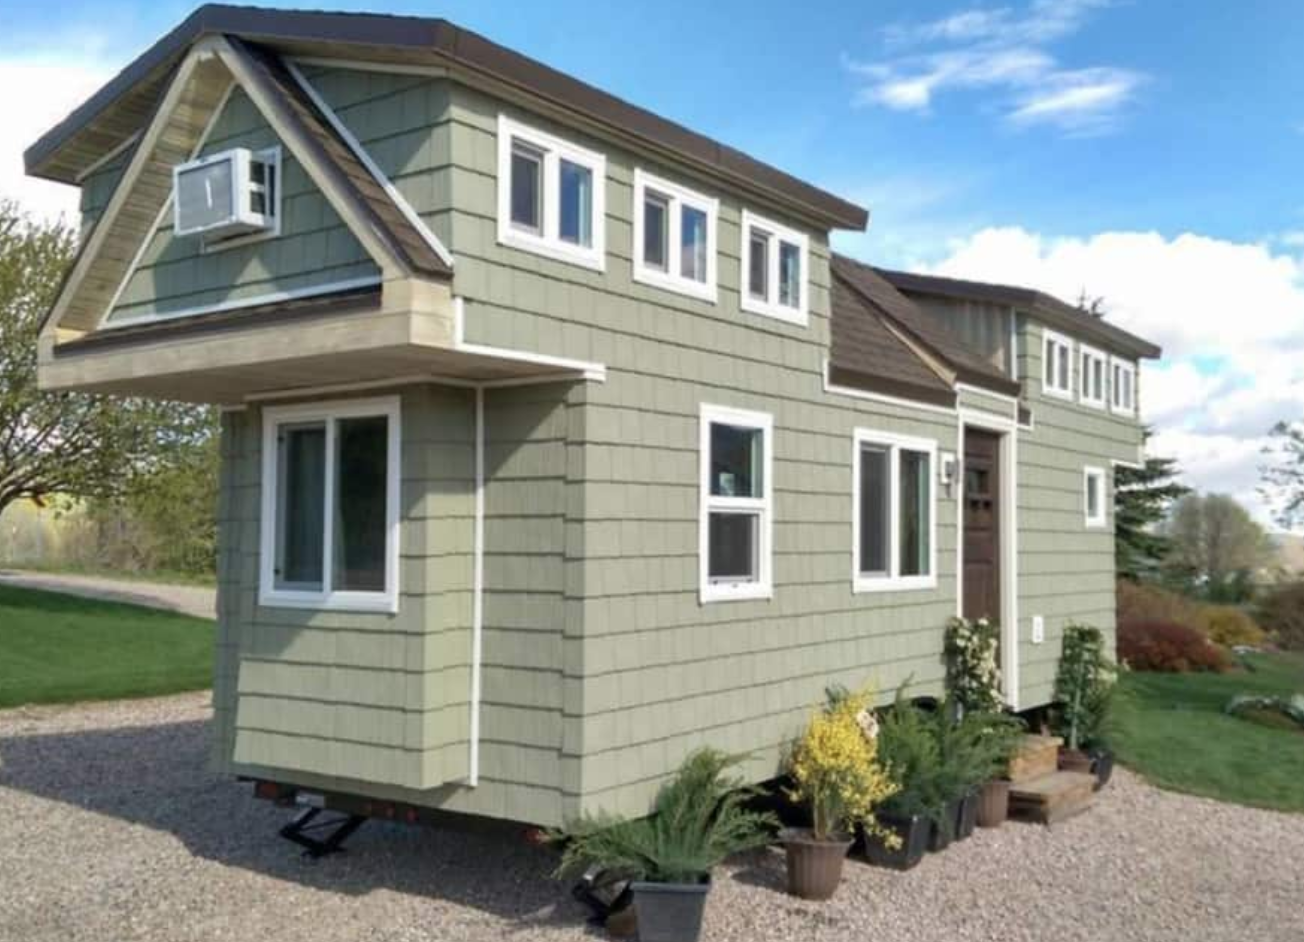 Photo of Top 10 Places to build a Tiny House